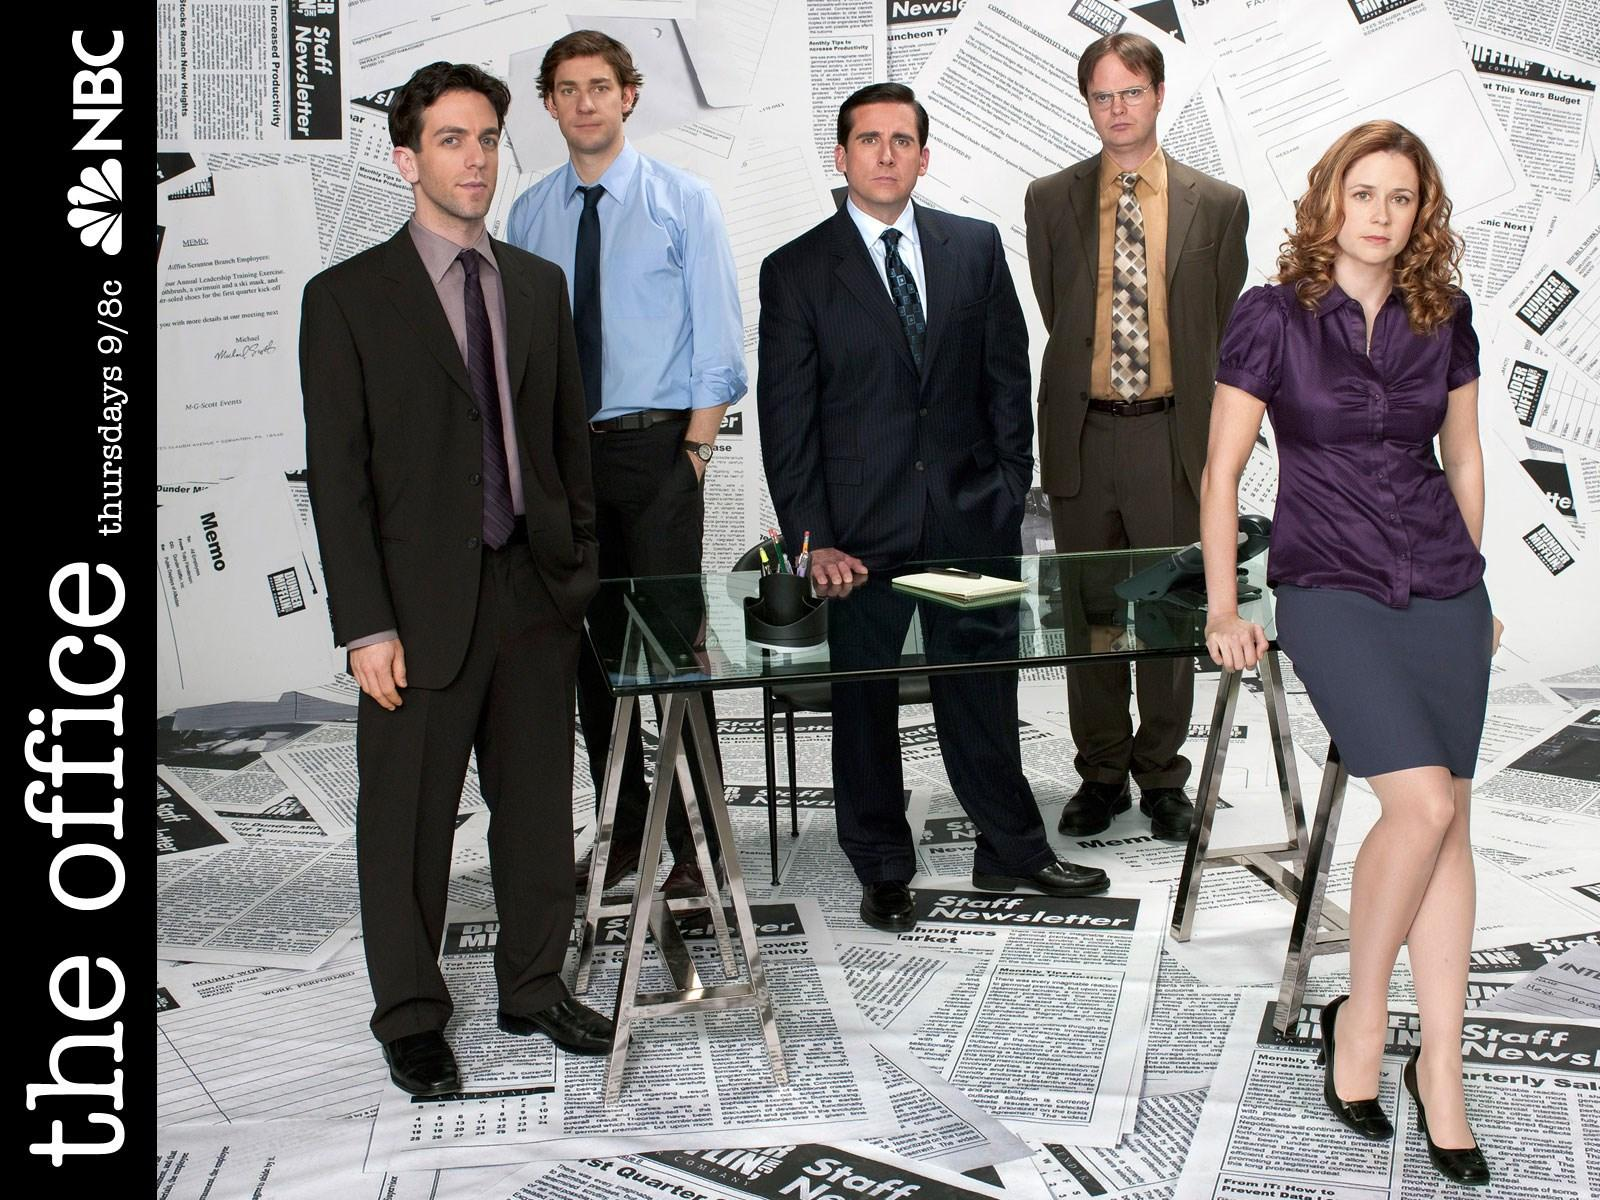 1600x1200 high resolution wallpapers widescreen the office us